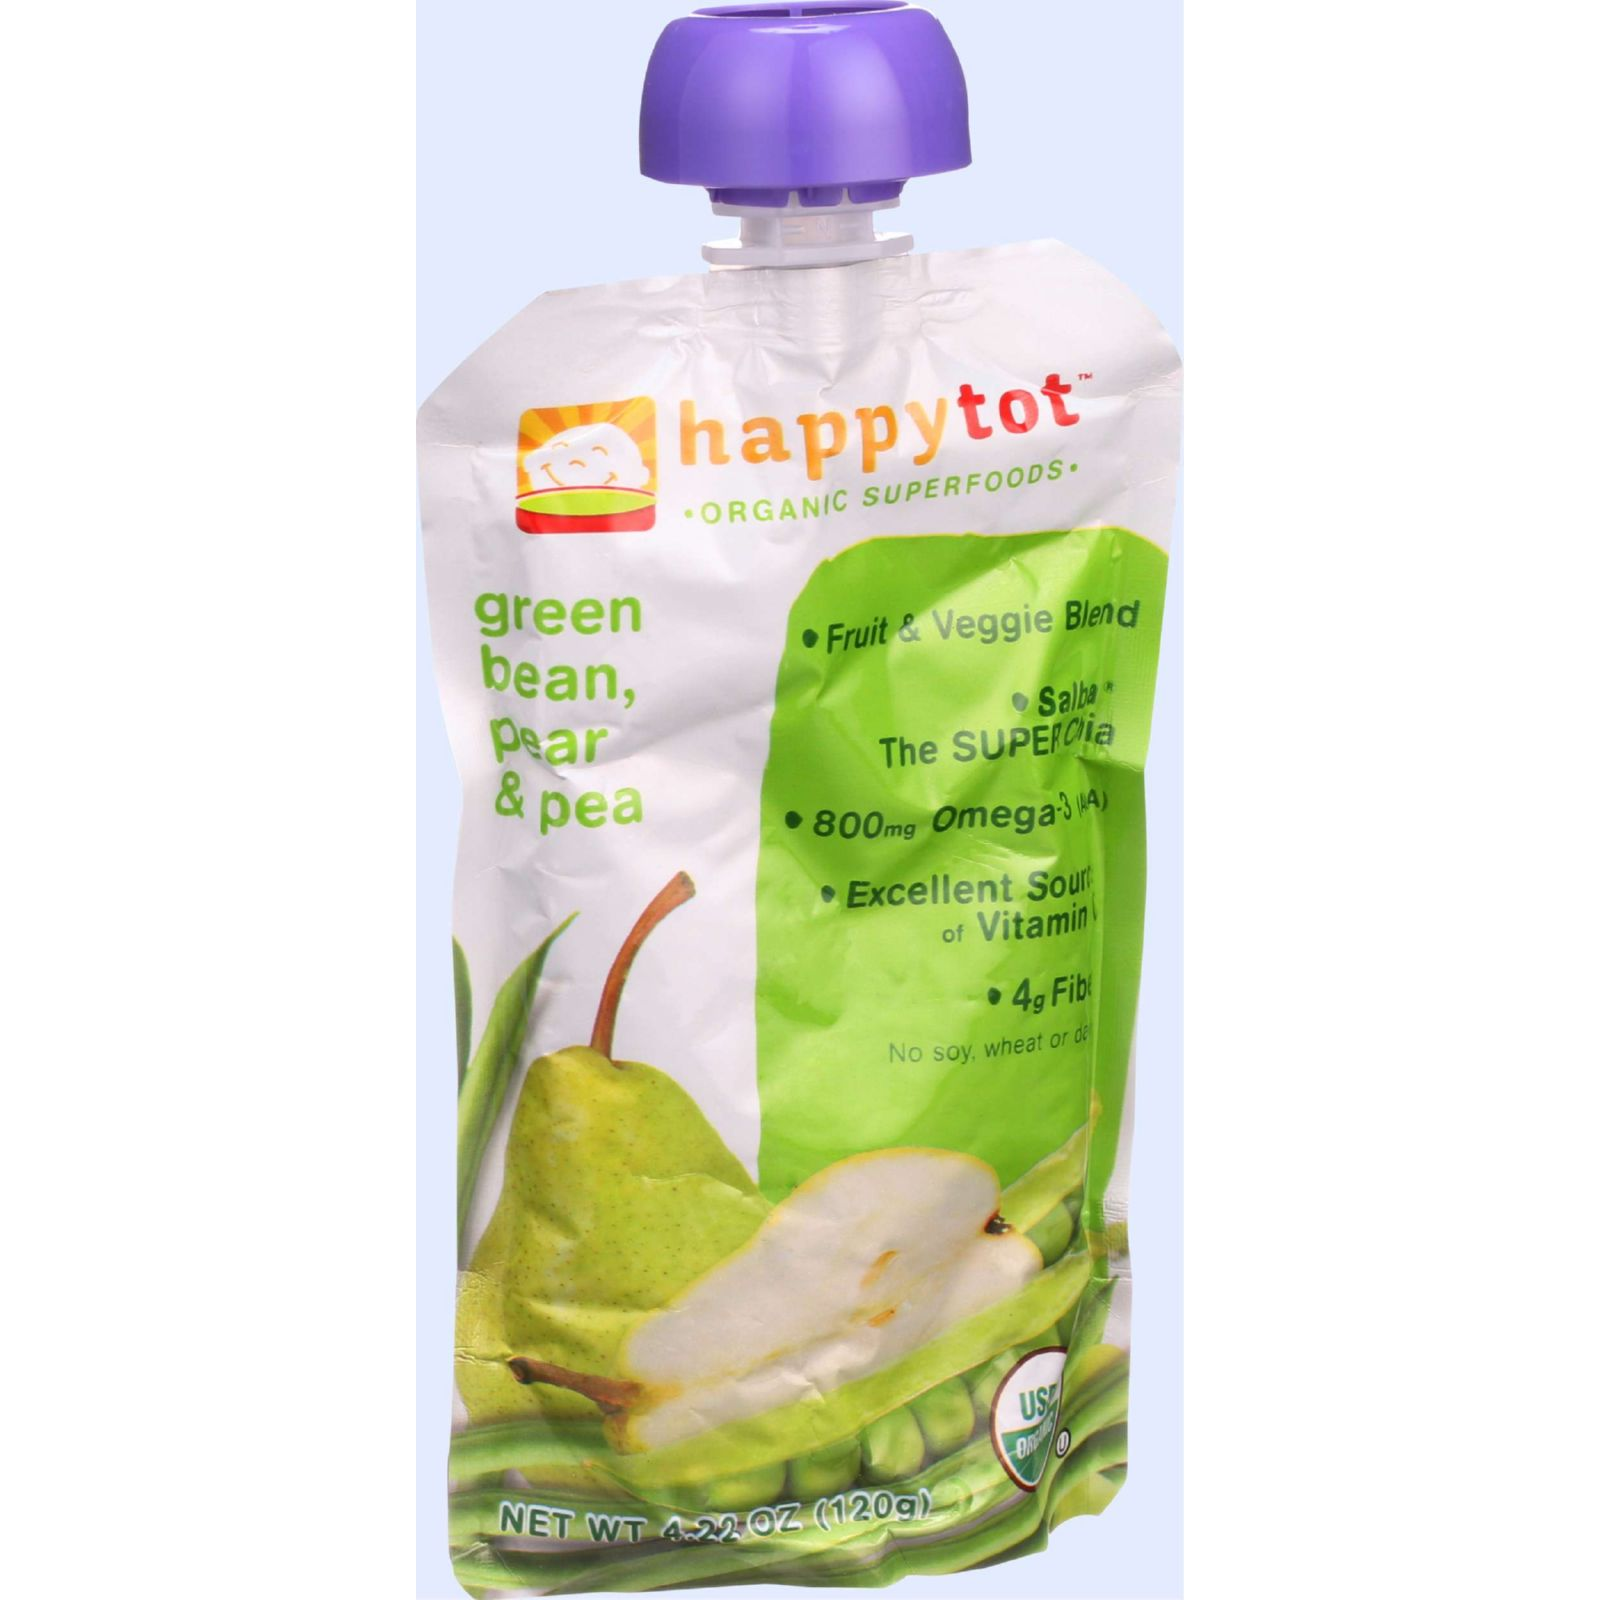 Happy Tot® Superfoods Organic Pears, Peas & Green Beans + Super Chia Fruit & Veggie Blend 4.22 oz. Pouch